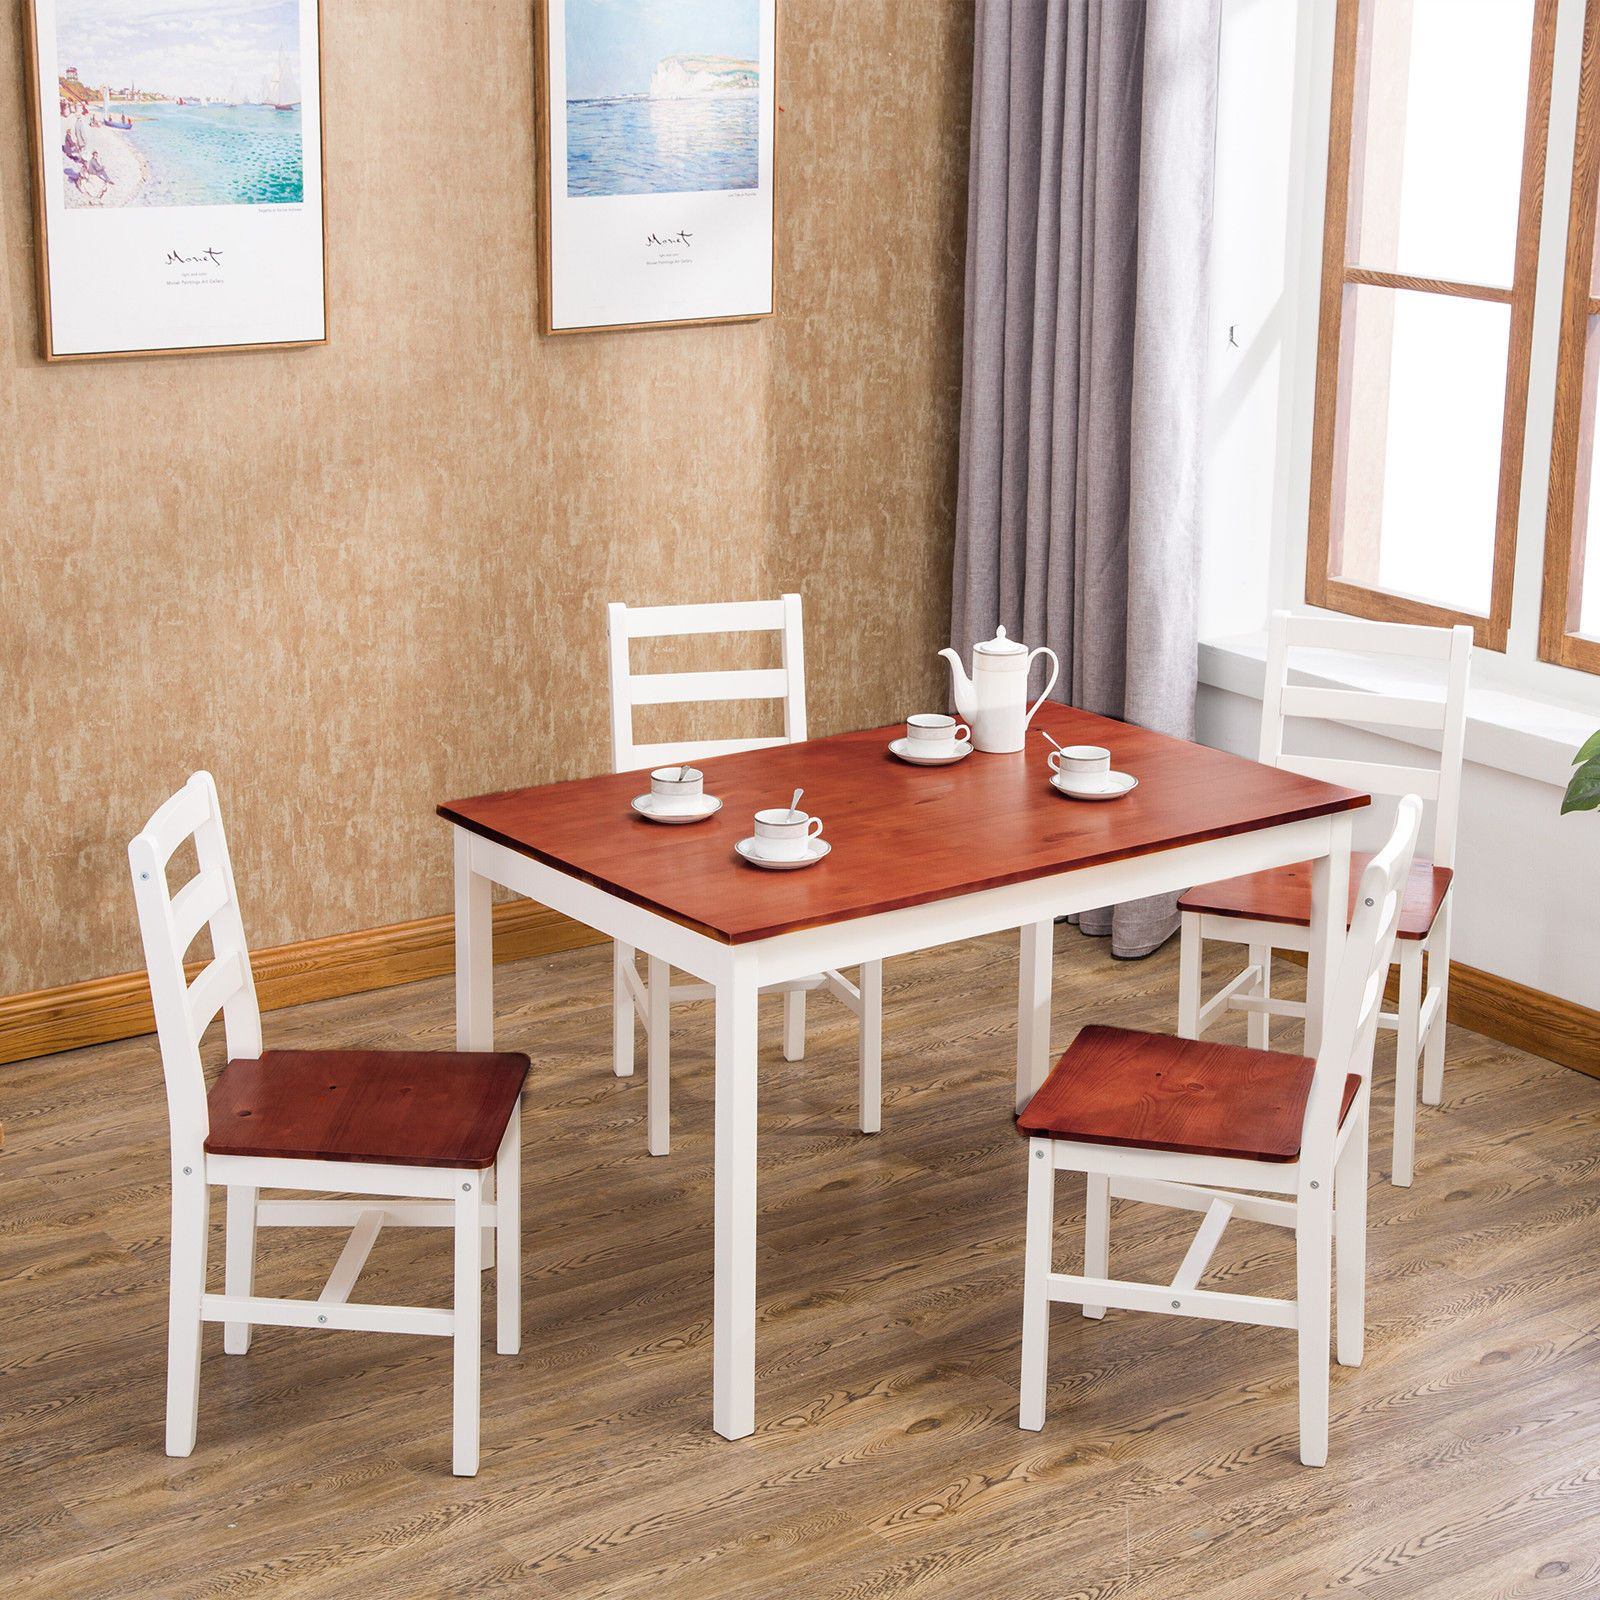 5 Pcs Pine Wood Dining Table Set W 4 Chairs Kitchen Dining Room